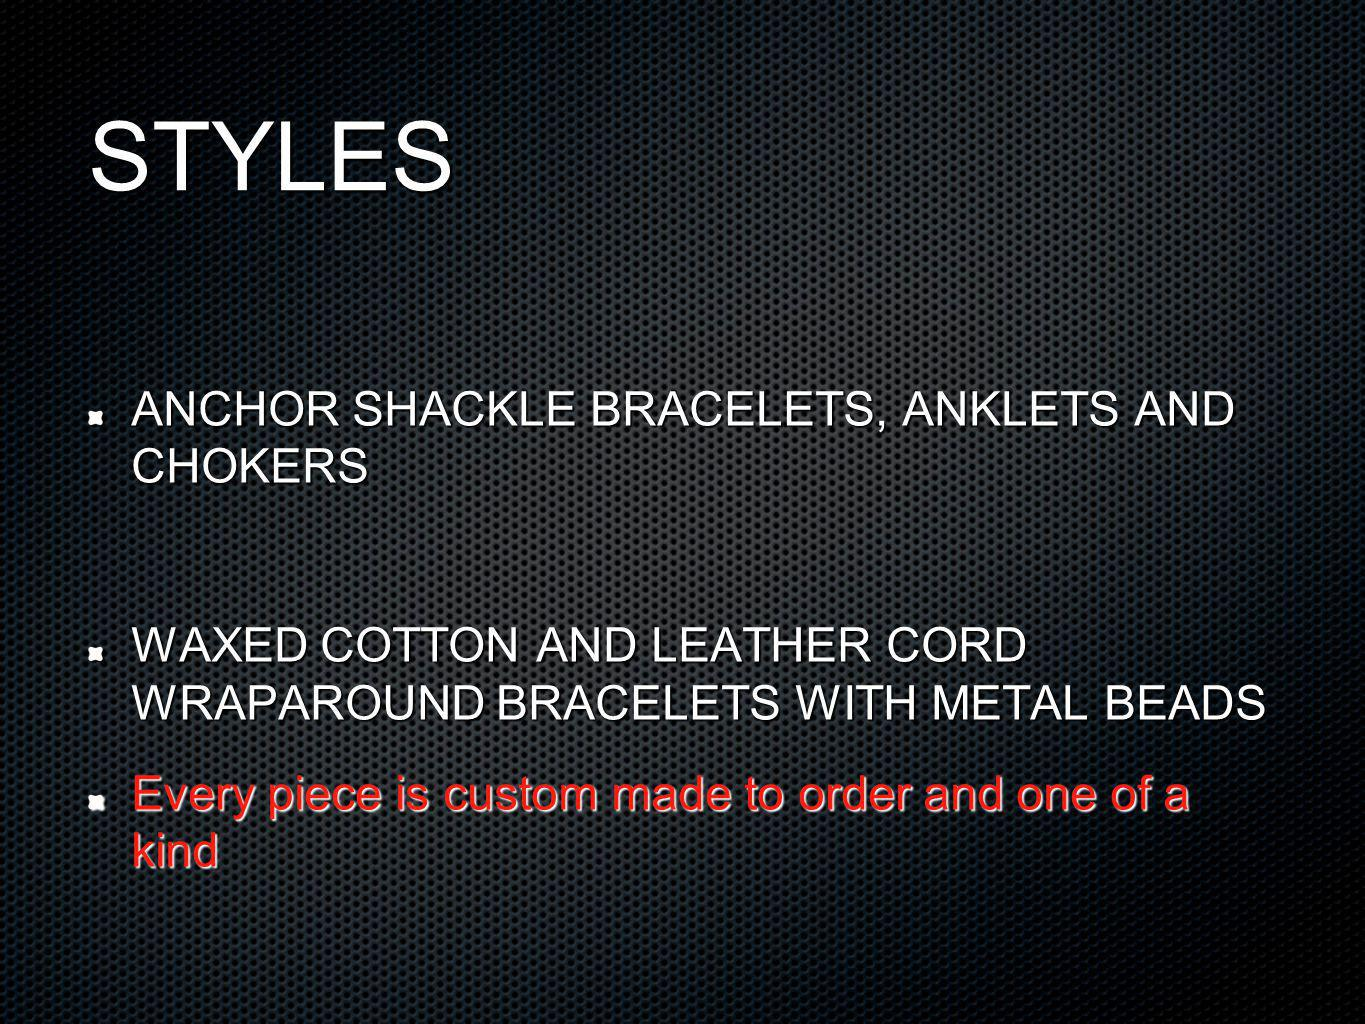 STYLES ANCHOR SHACKLE BRACELETS, ANKLETS AND CHOKERS WAXED COTTON AND LEATHER CORD WRAPAROUND BRACELETS WITH METAL BEADS Every piece is custom made to